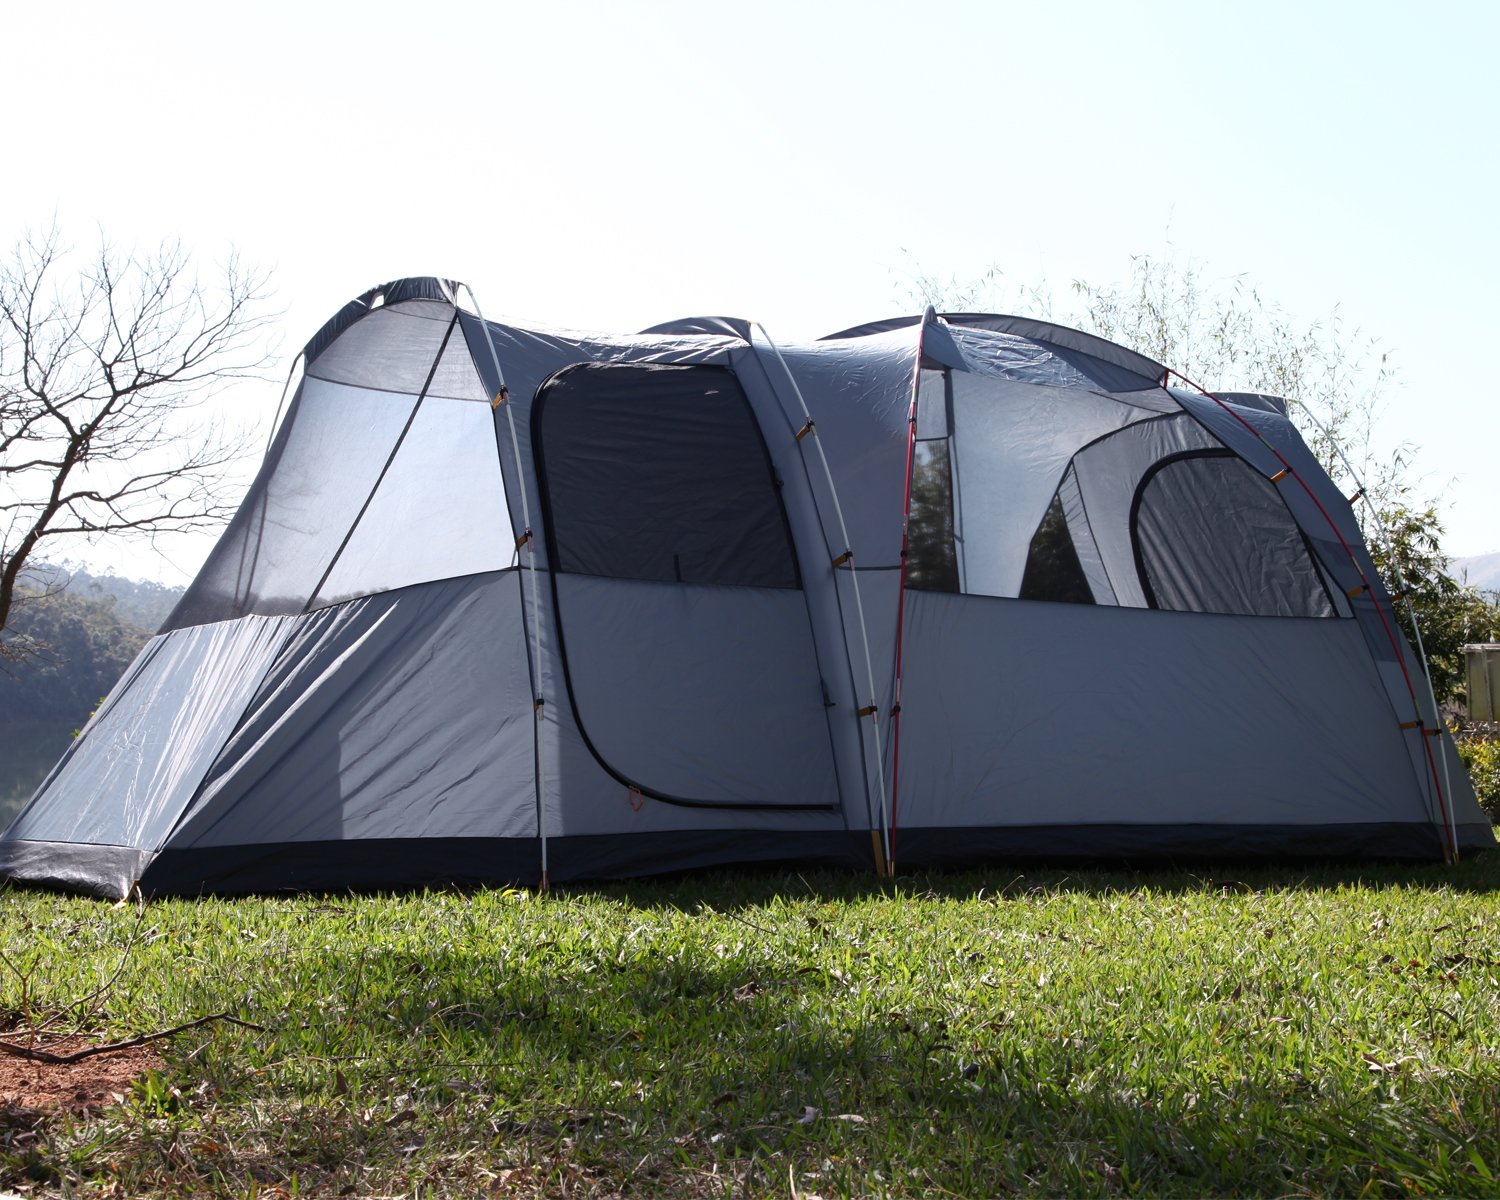 Based on our reviews the best 10 person tent is the Arizona GT Sport C&ing Tent because it has the best features that weu0027re looking for. & How To Choose The Best 10 Person Tent: Guide And Reviews - Hunt ...